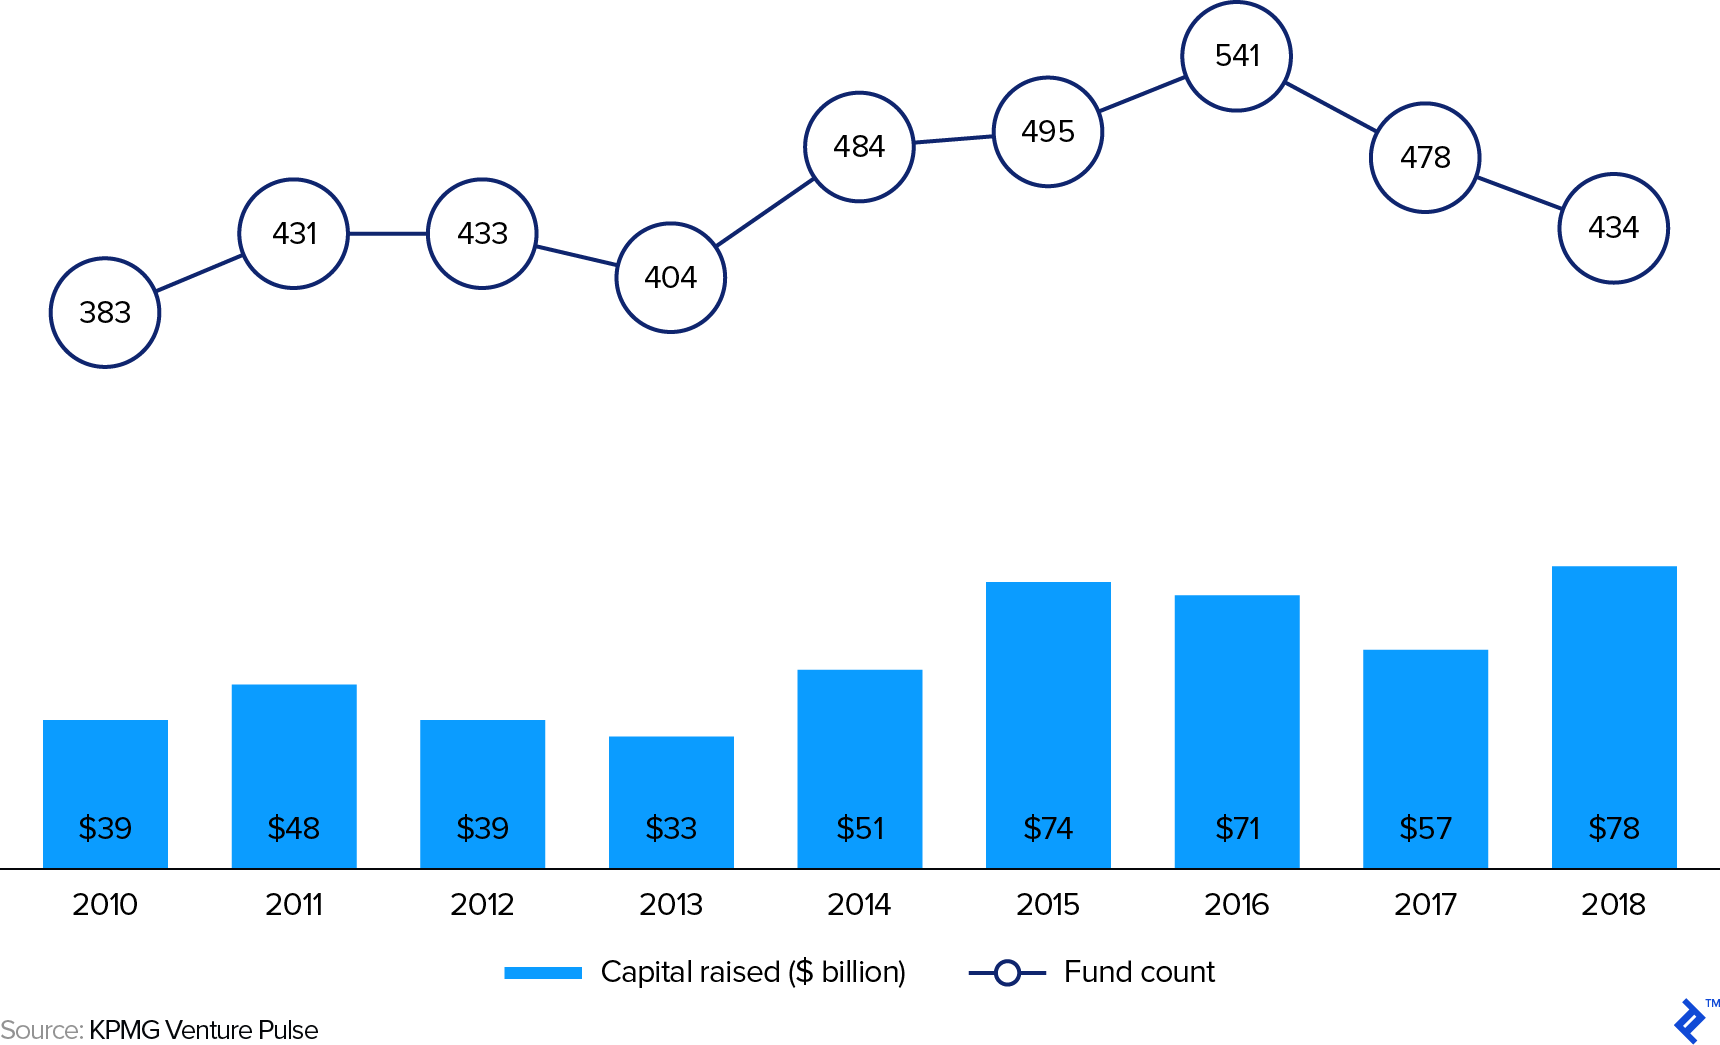 2010 - 2018 Global Venture Capital Fund-Level Capital Raising Amount and Count